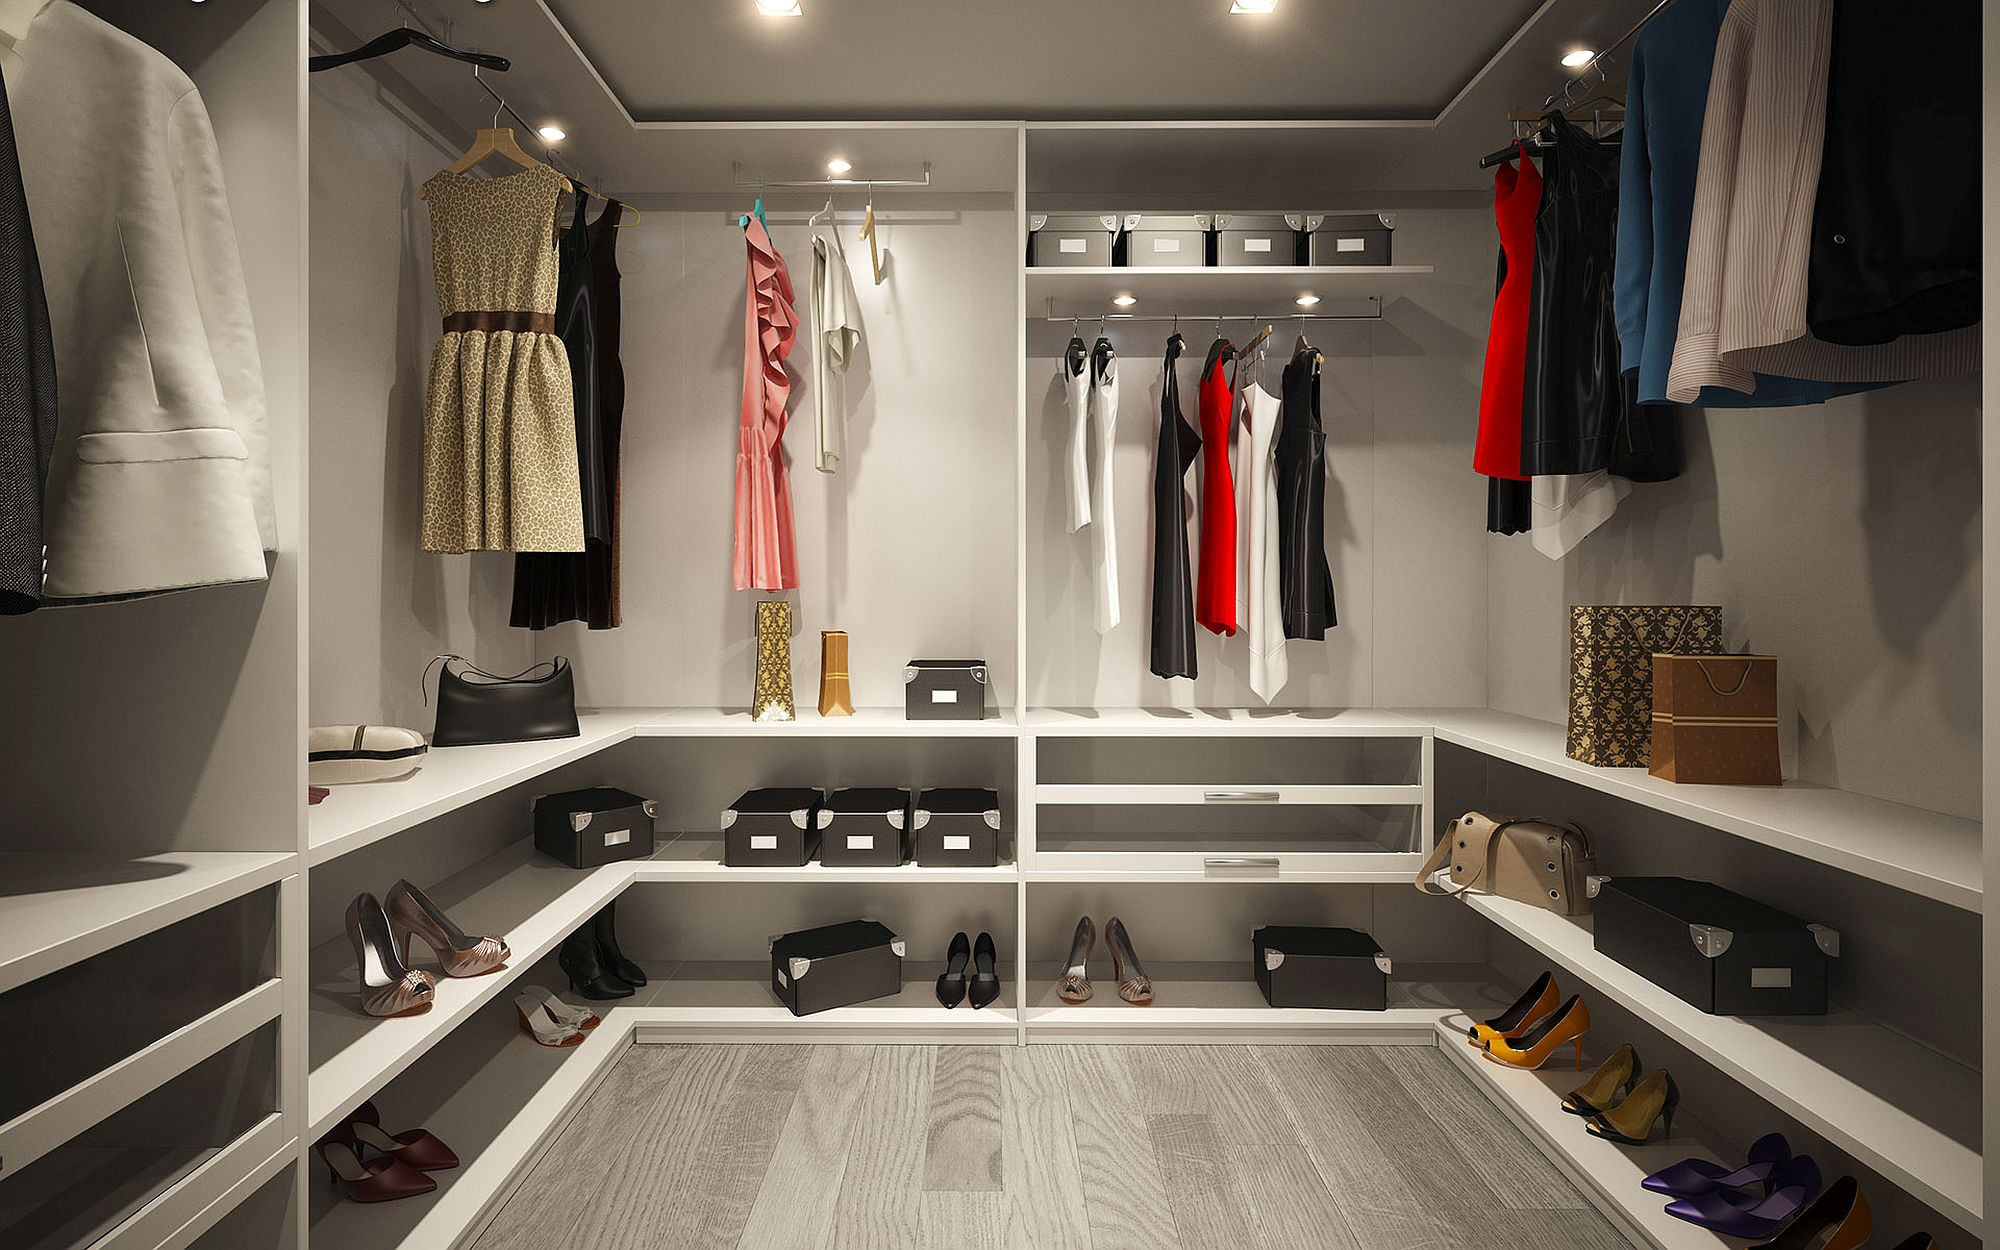 Spacious walk-in closets designed to perfection